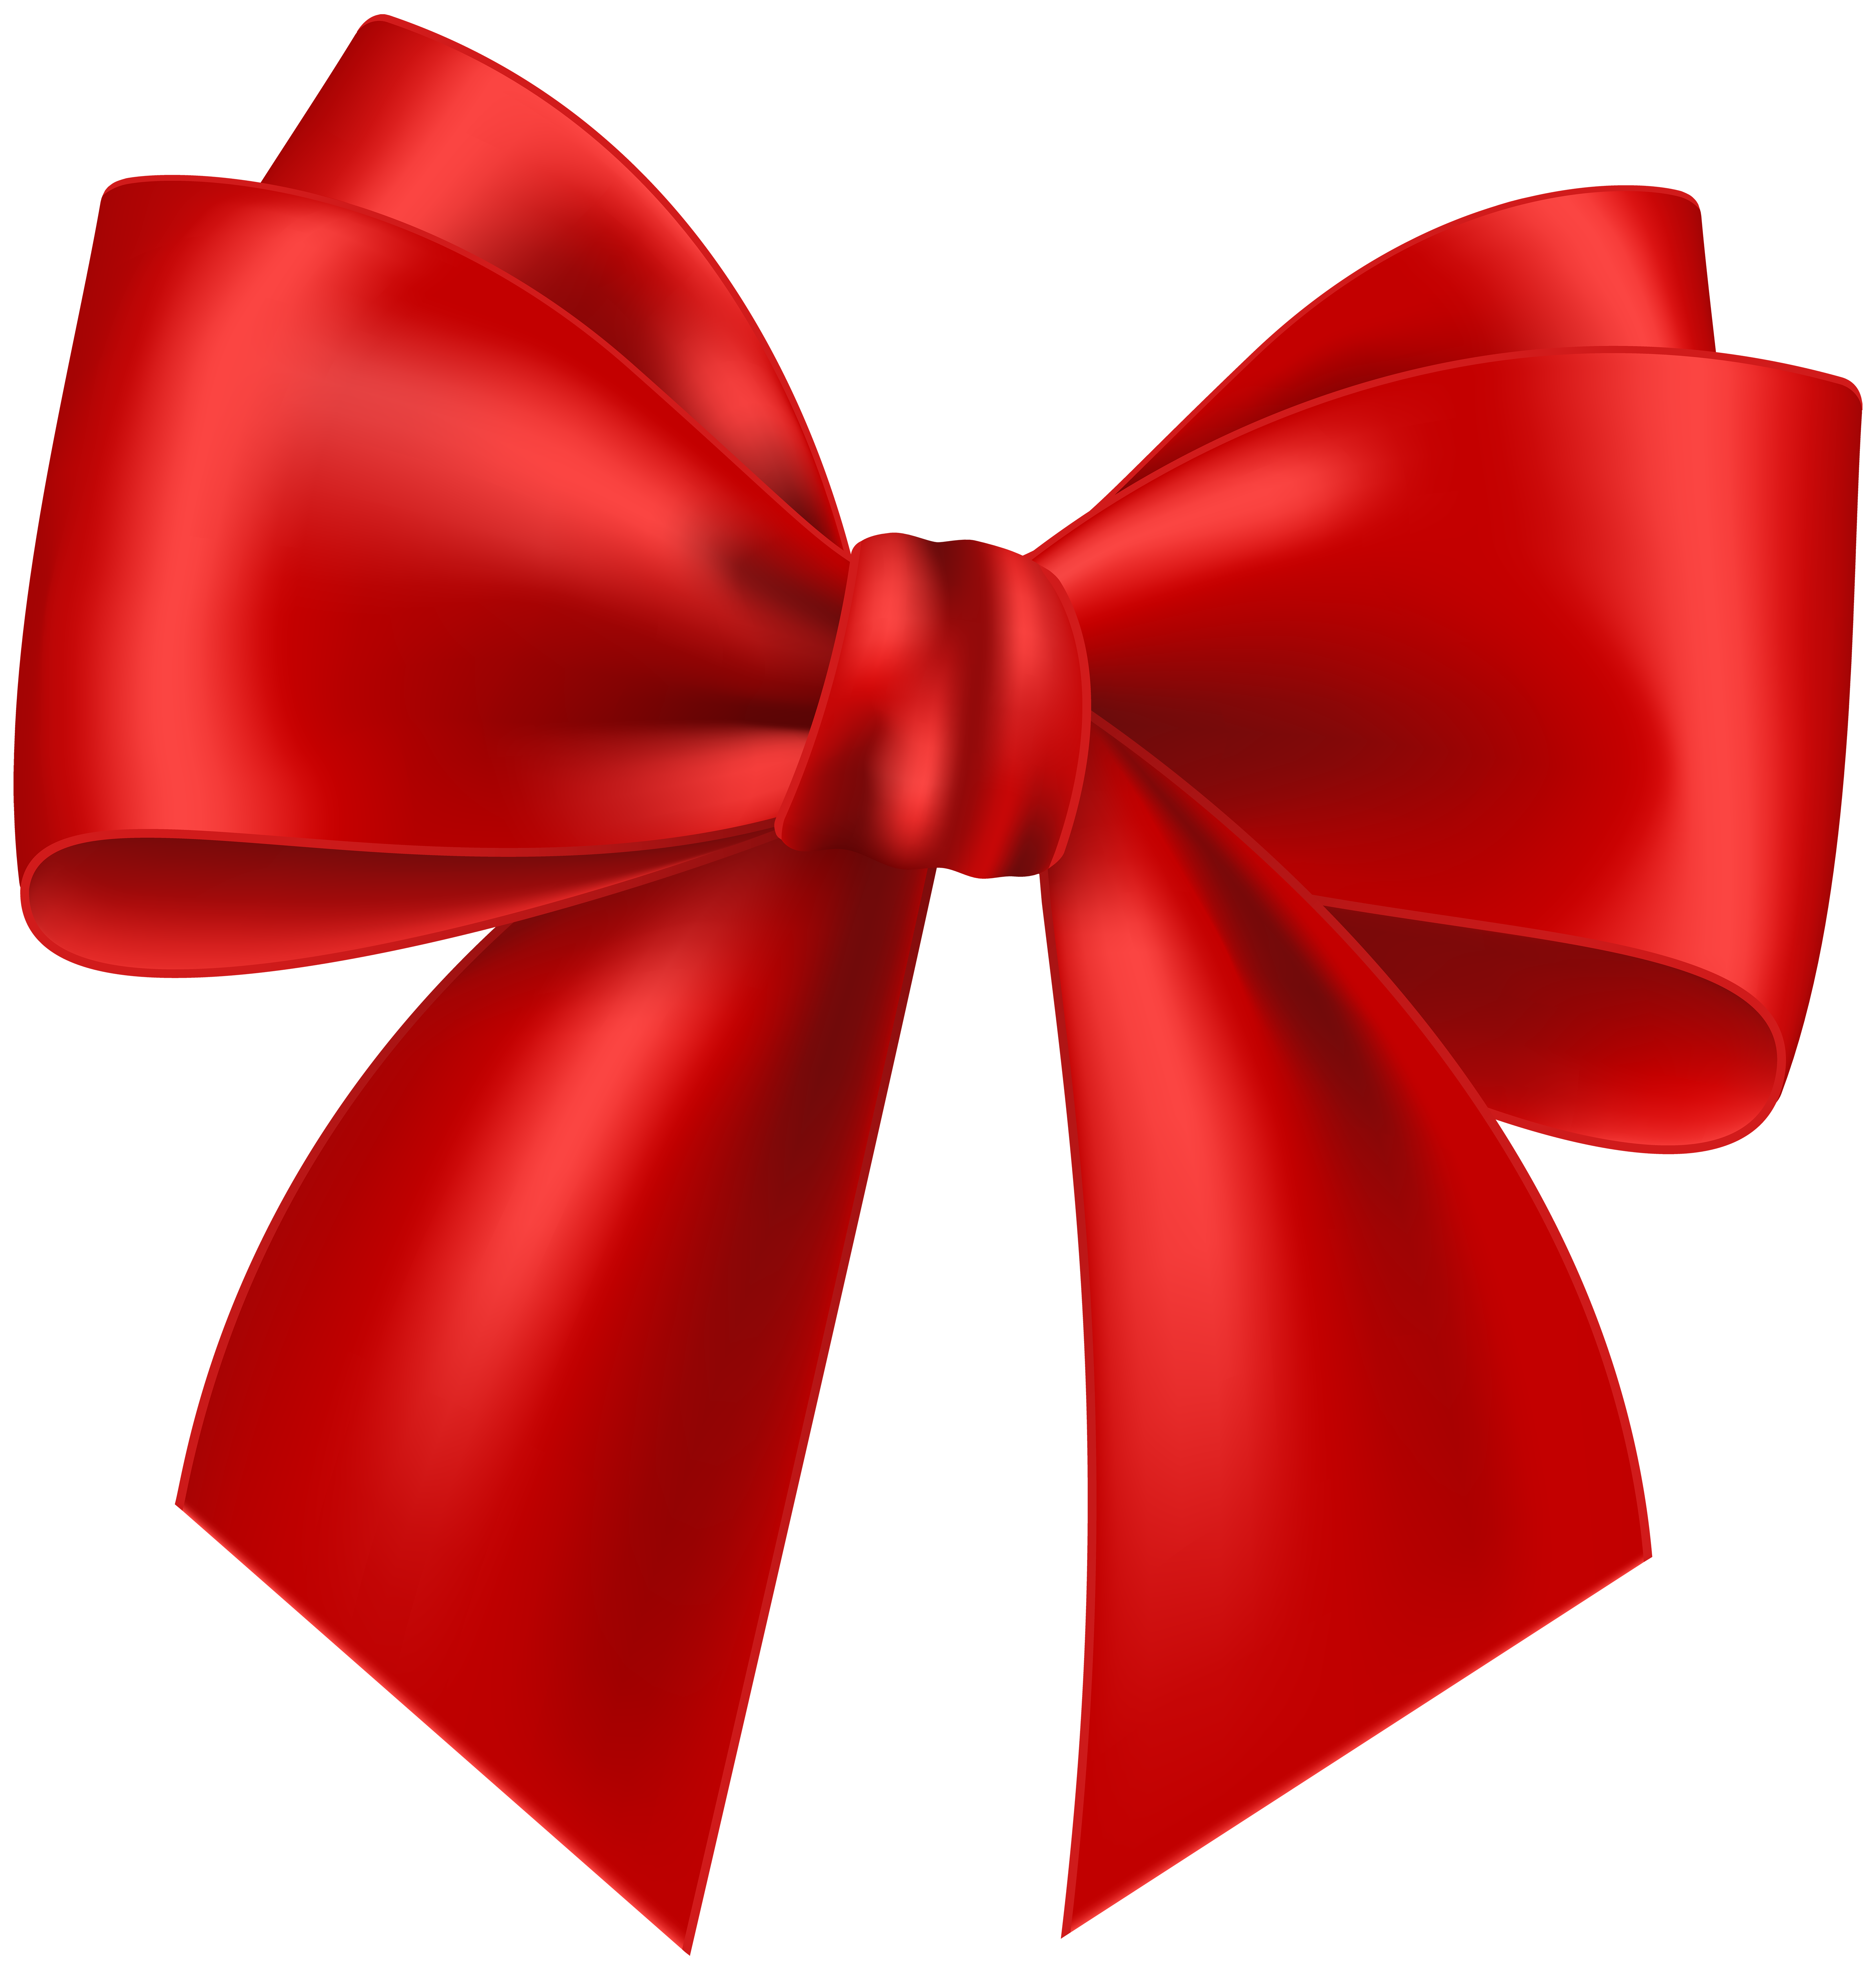 Free red bow clipart png black and white Red Bow Transparent Clip Art Image | Gallery Yopriceville - High ... png black and white